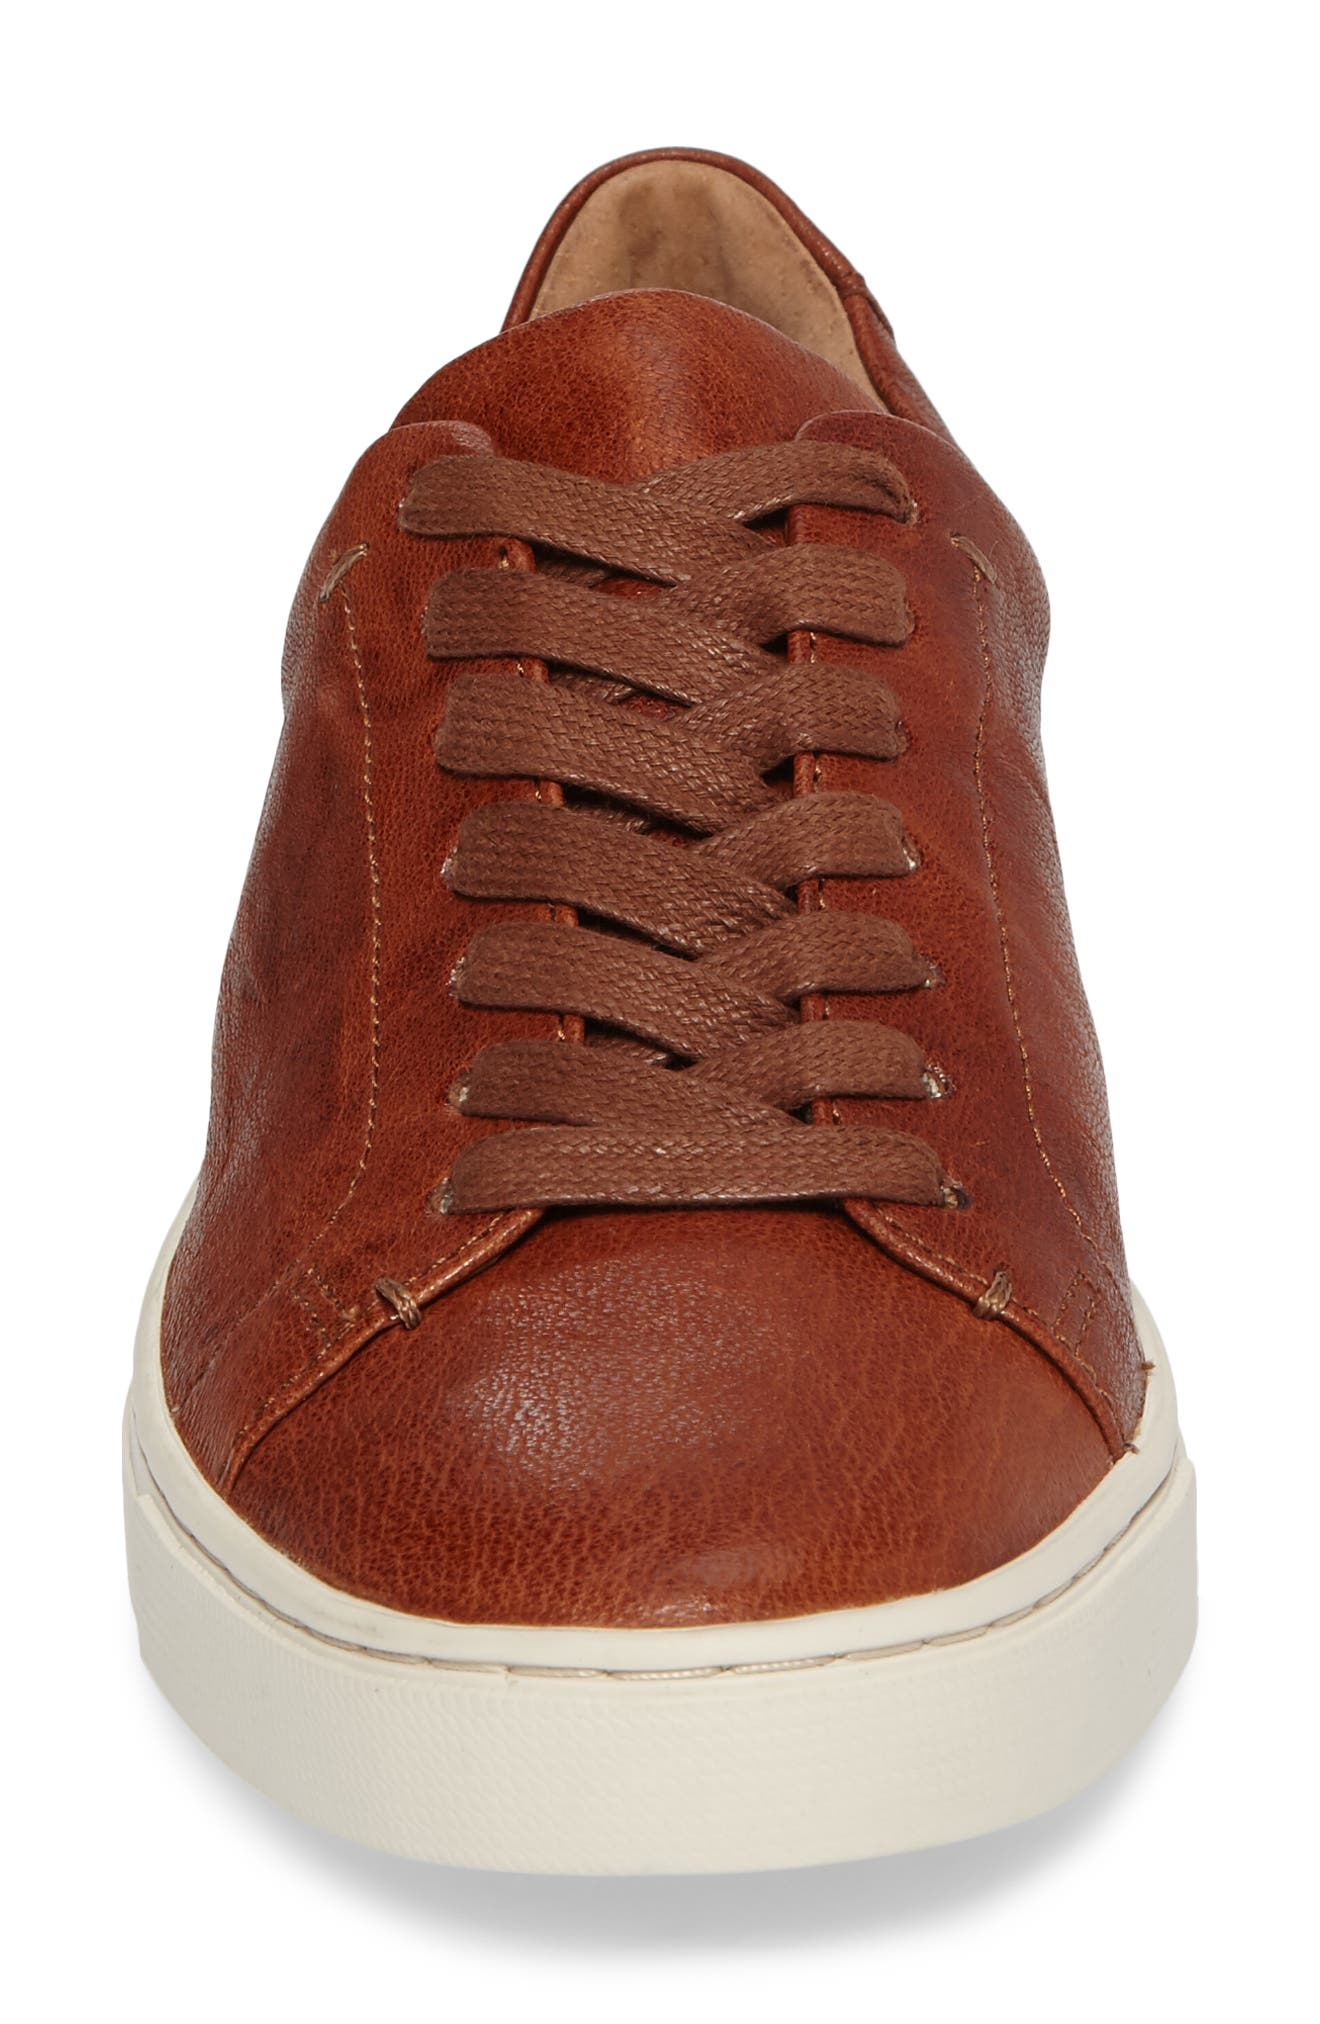 Ivy Sneaker,                             Alternate thumbnail 4, color,                             Cognac